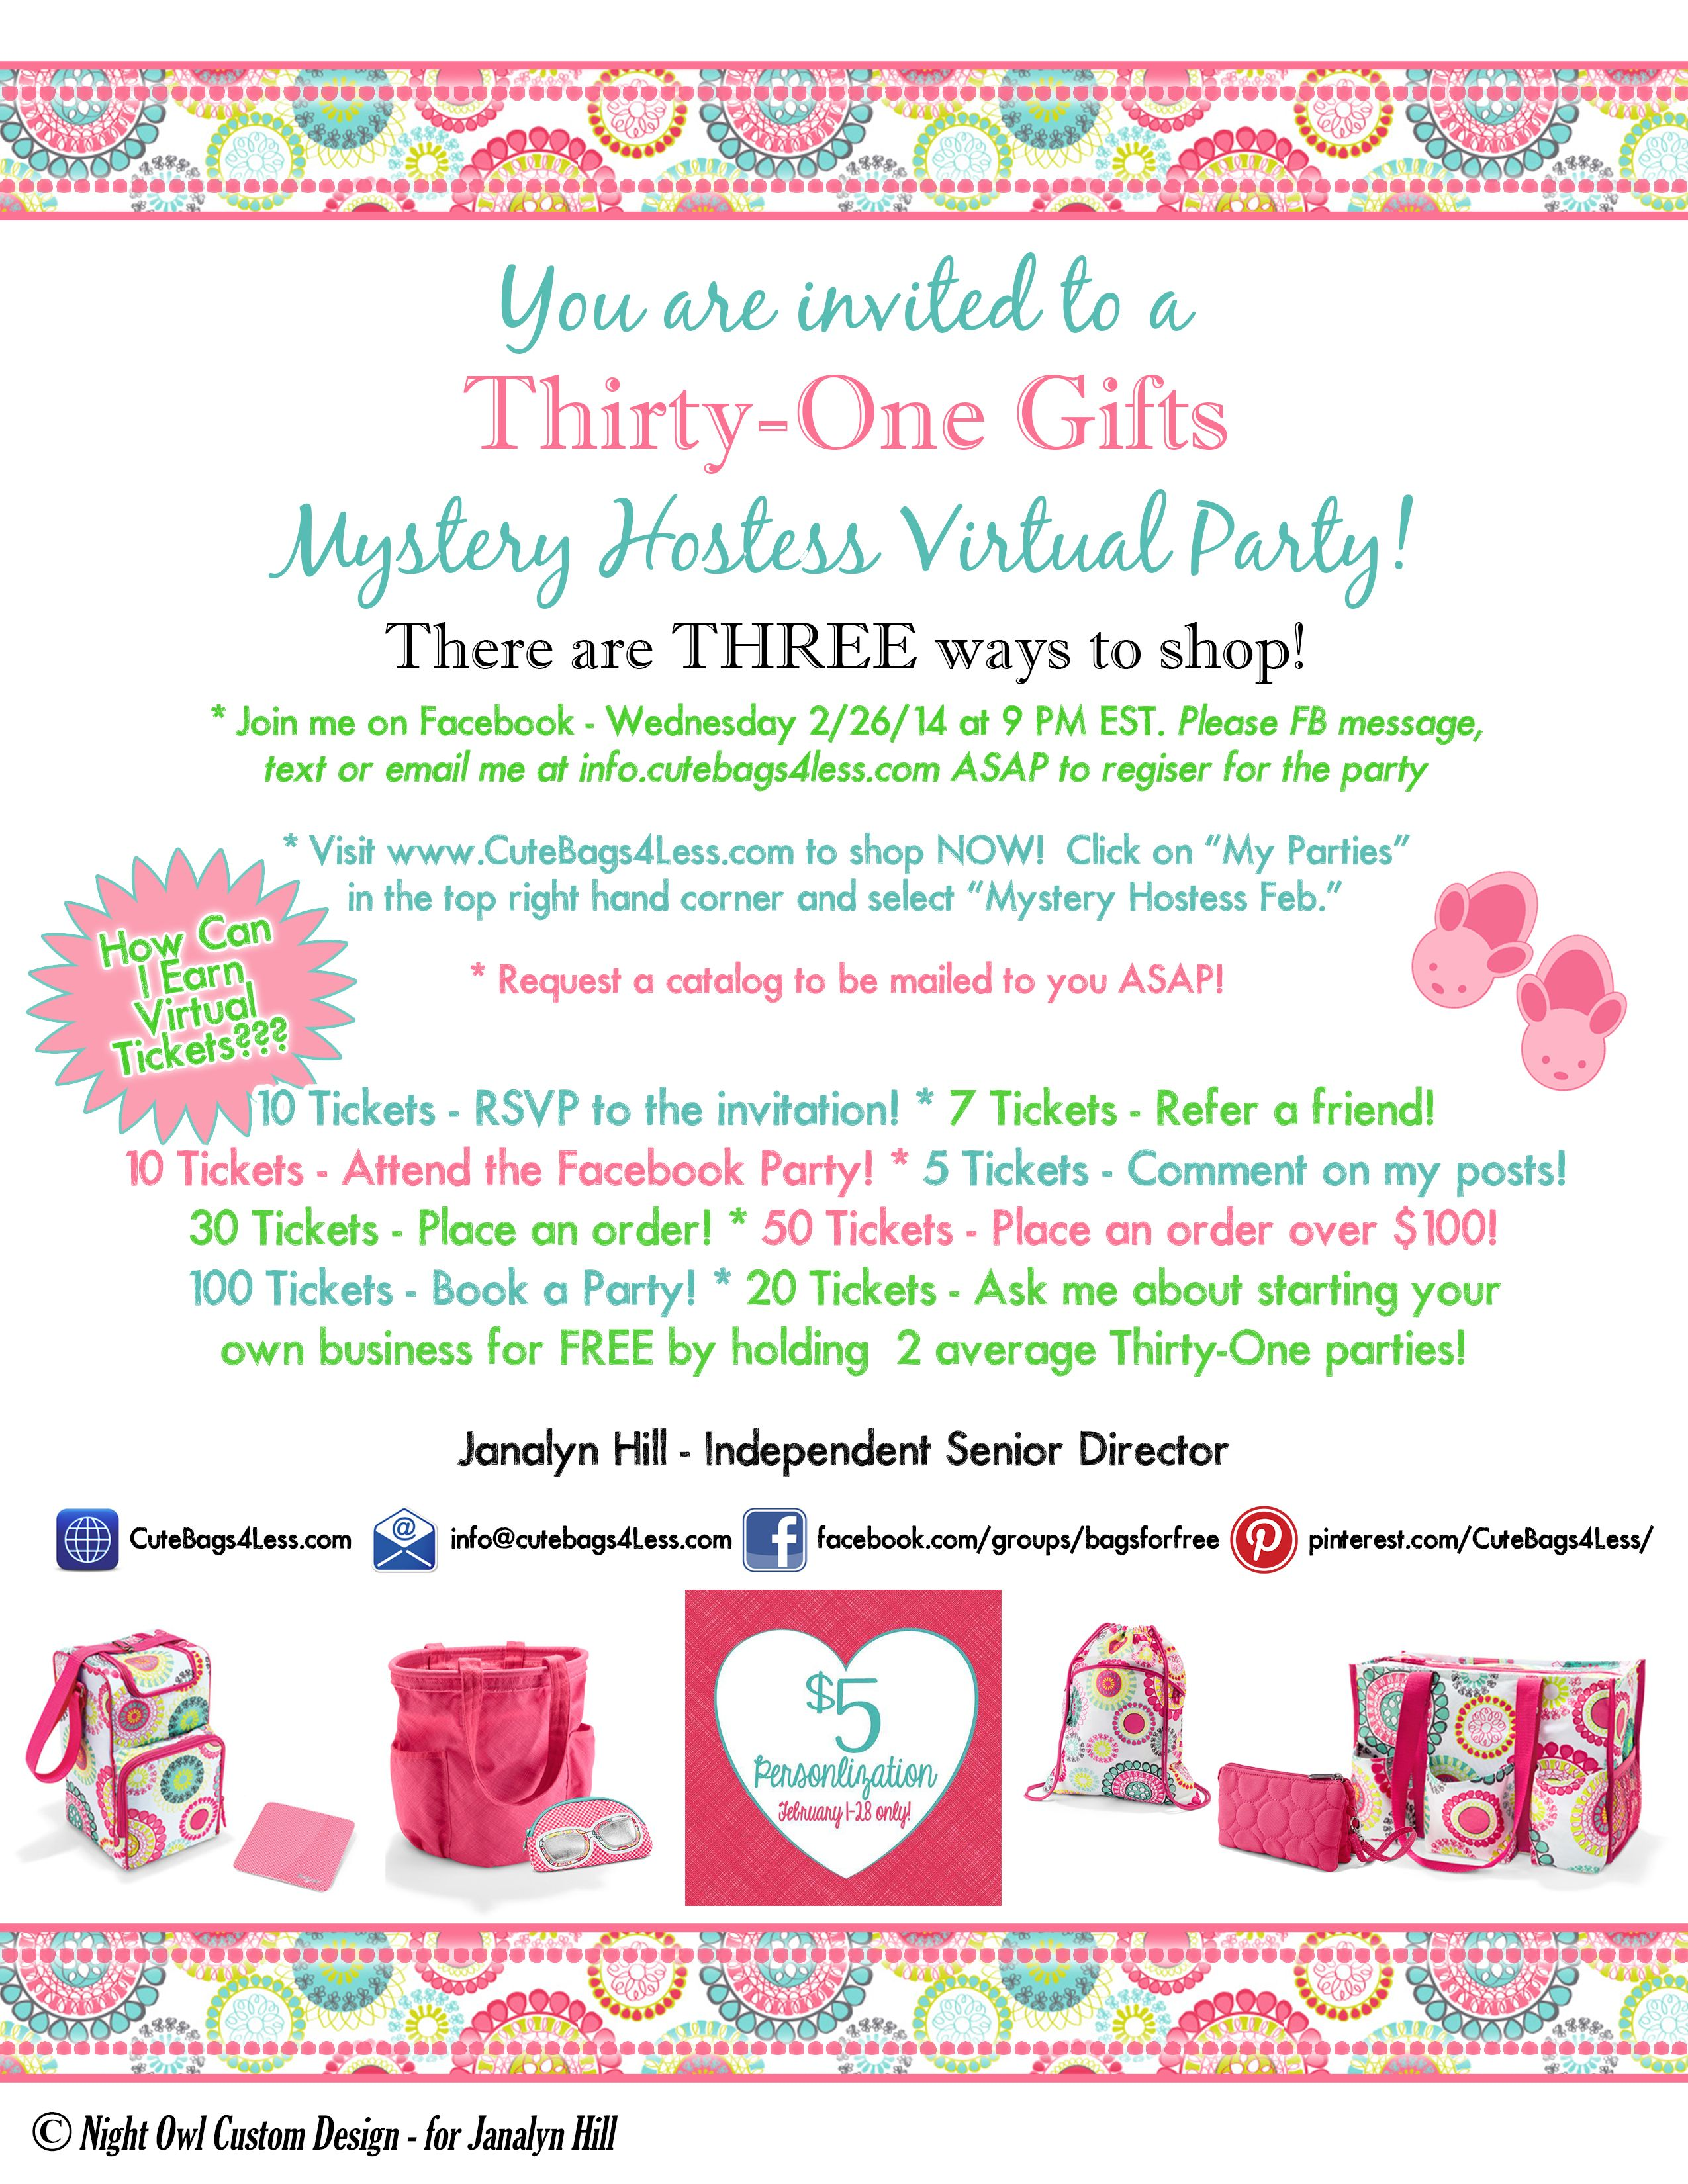 The Party is on FB by invite only. | Thirty-One ideas | Pinterest ...